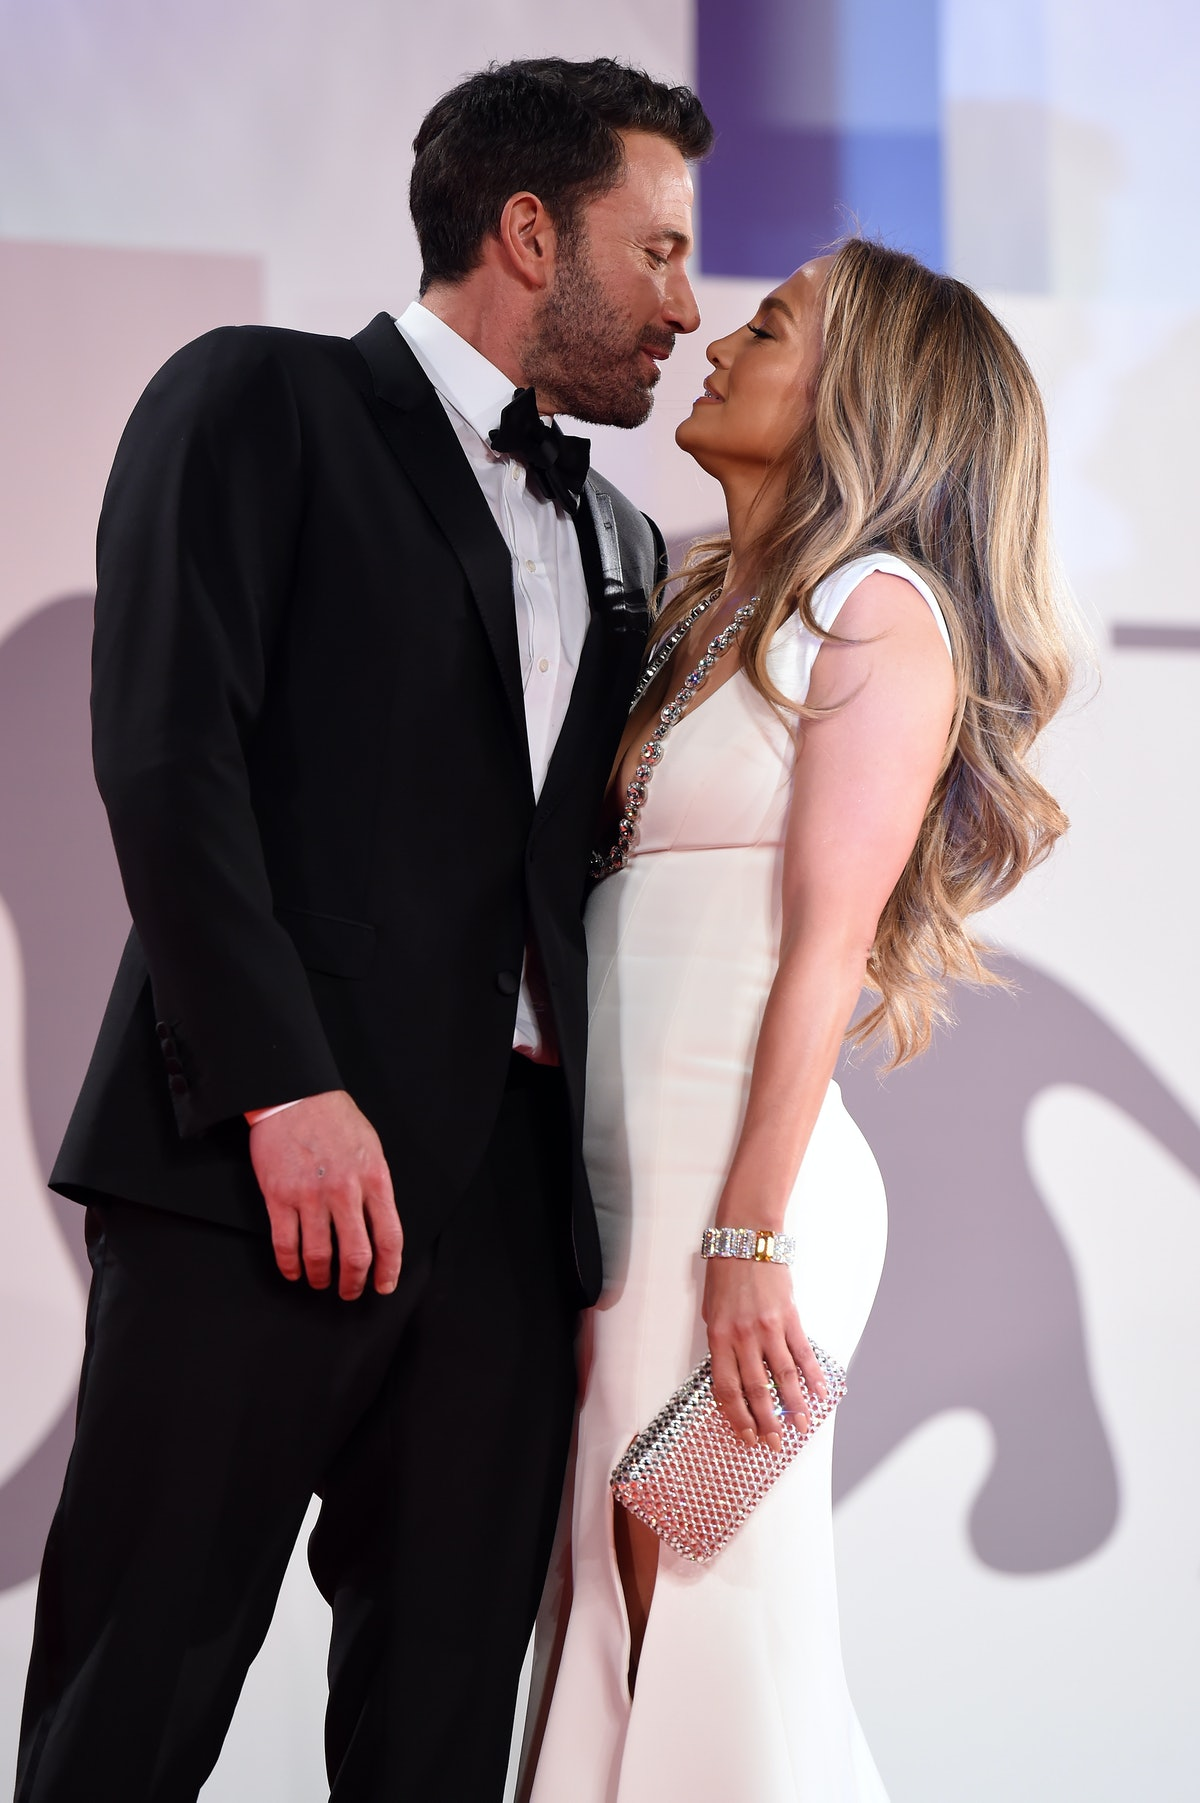 These pictures of Jennifer Lopez and Ben Affleck's 2021 red carpet debut are so sweet.